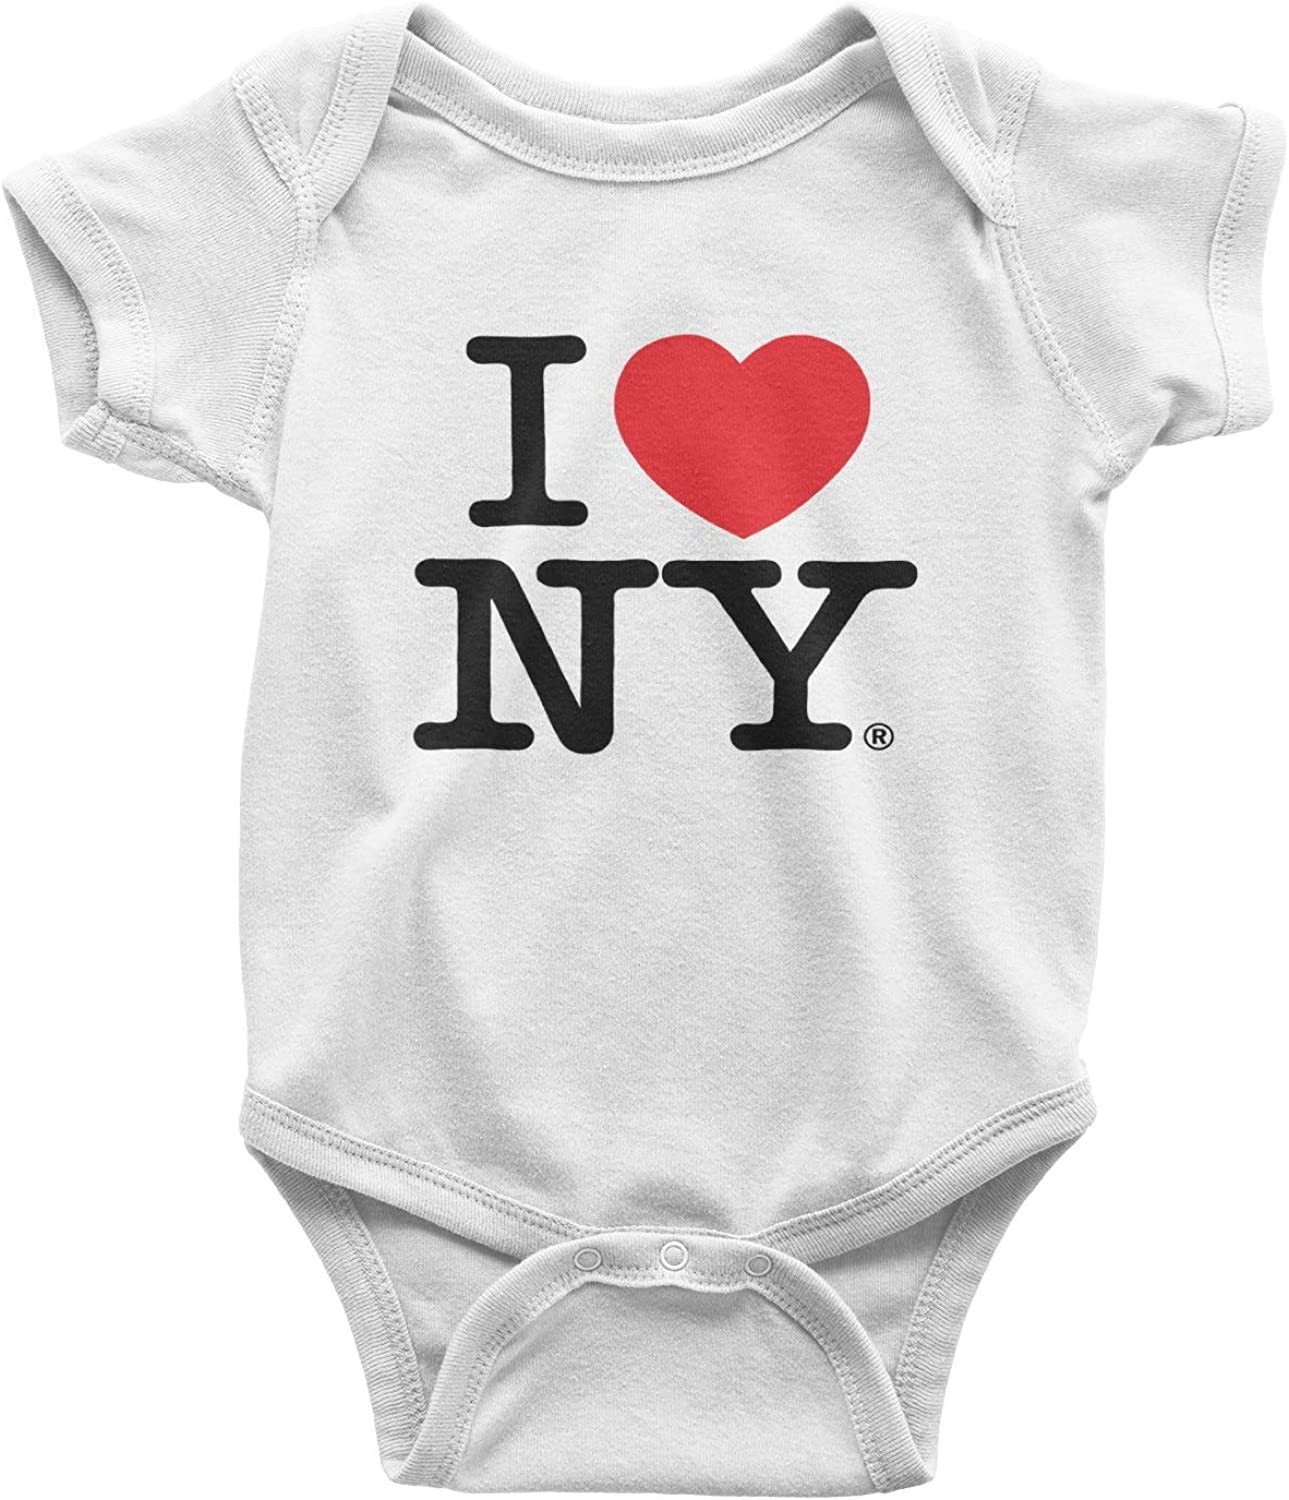 Baby Infant Romper I Love NY New York Long Sleeve Bodysuit Outfits Clothes White